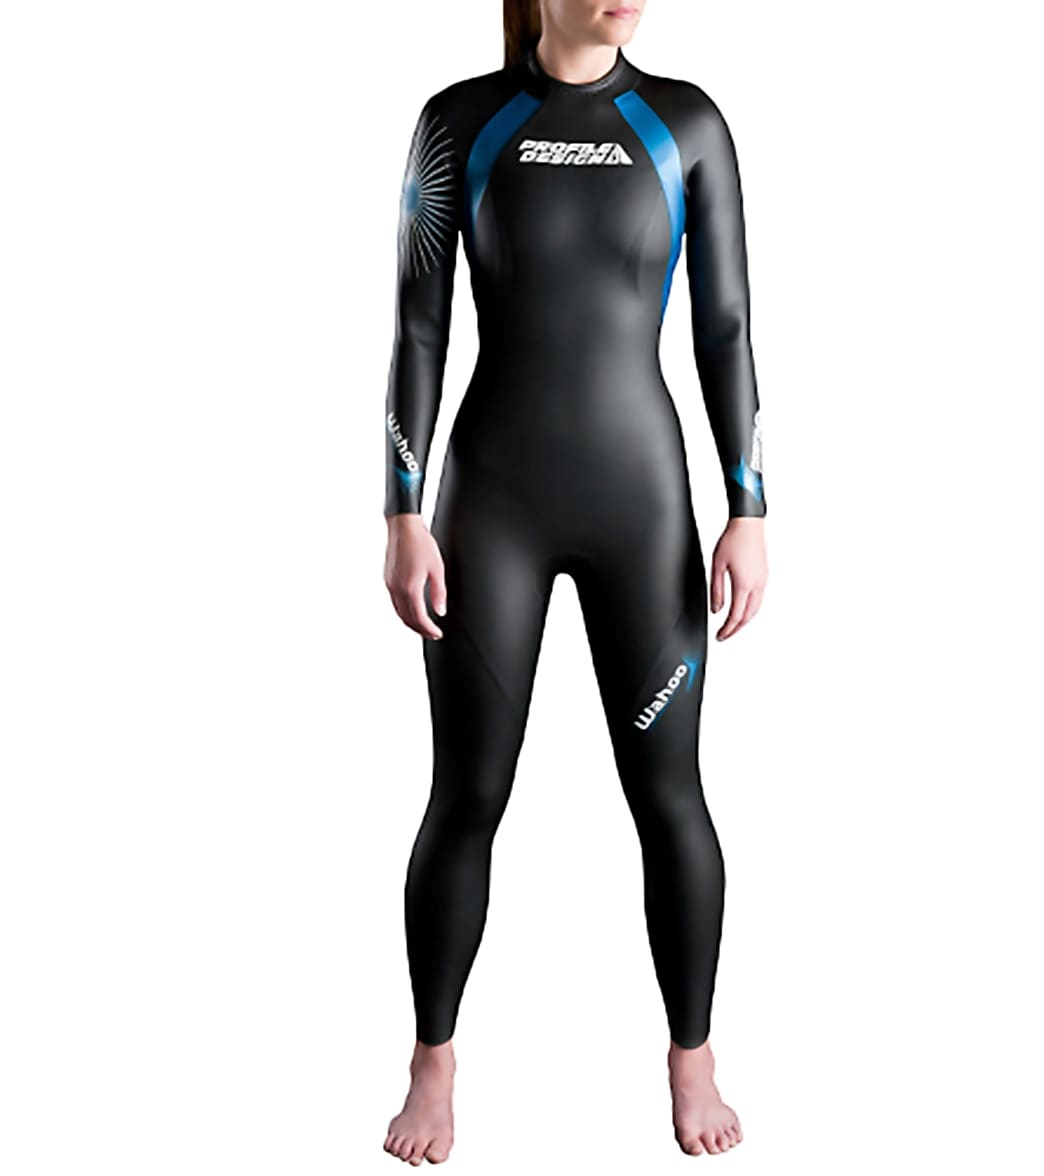 f69861e1dd Profile Design Women's Wahoo Fullsleeve Triathlon Wetsuit